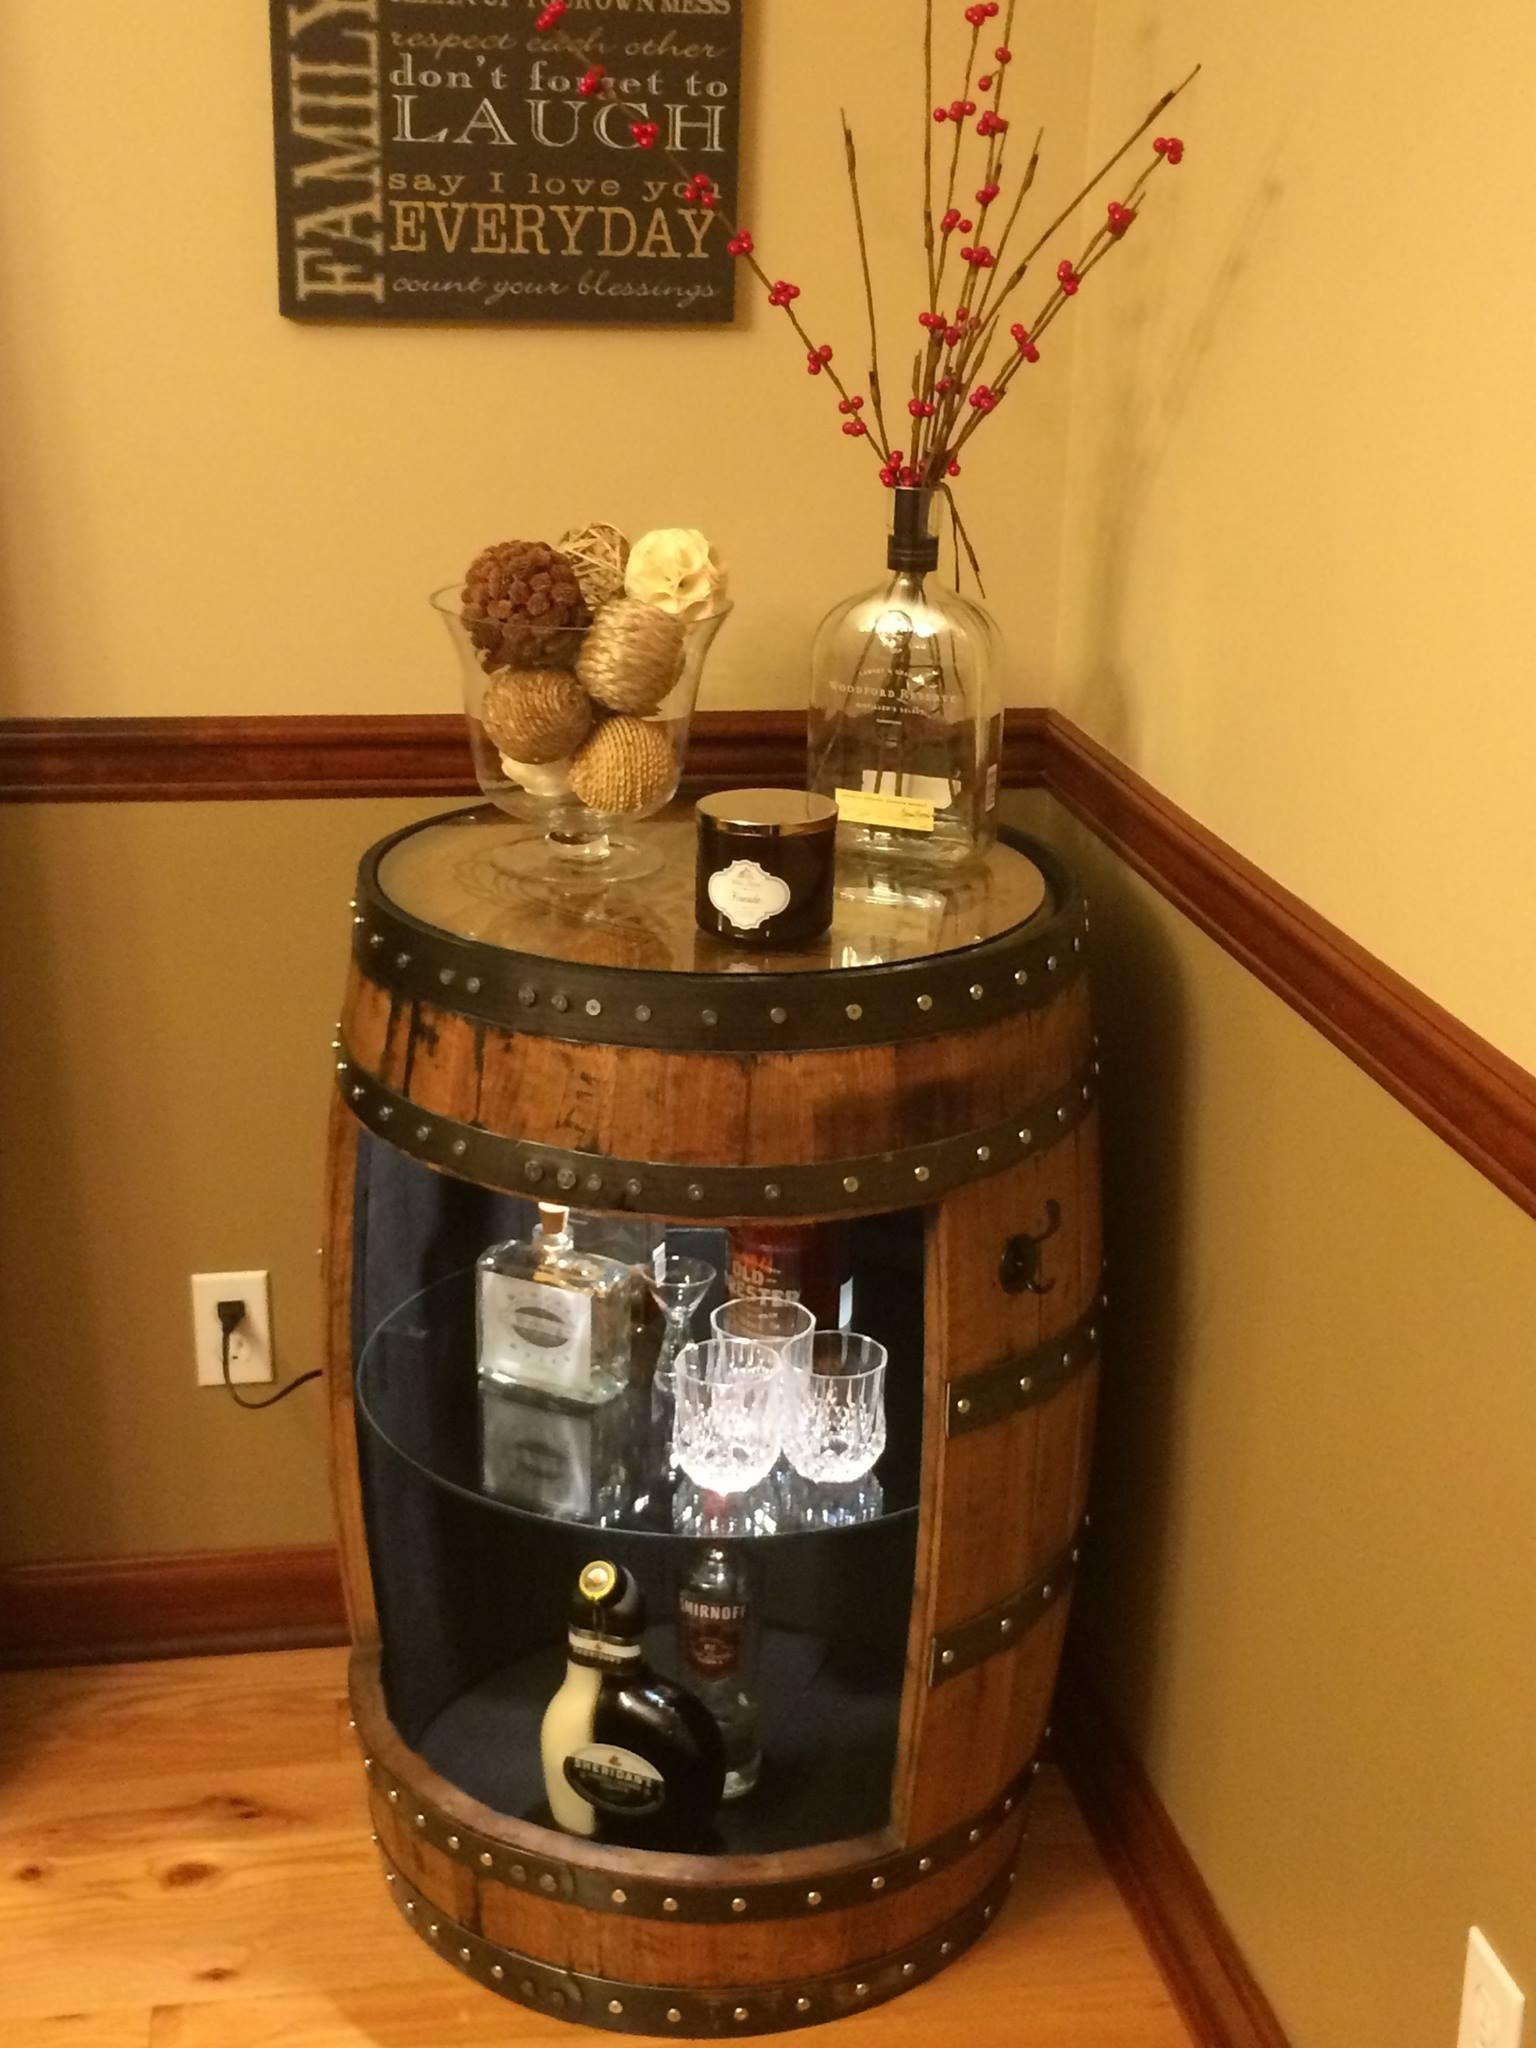 Check out our website for more photo's. Call if you would like a custom KY bourbon barrel.